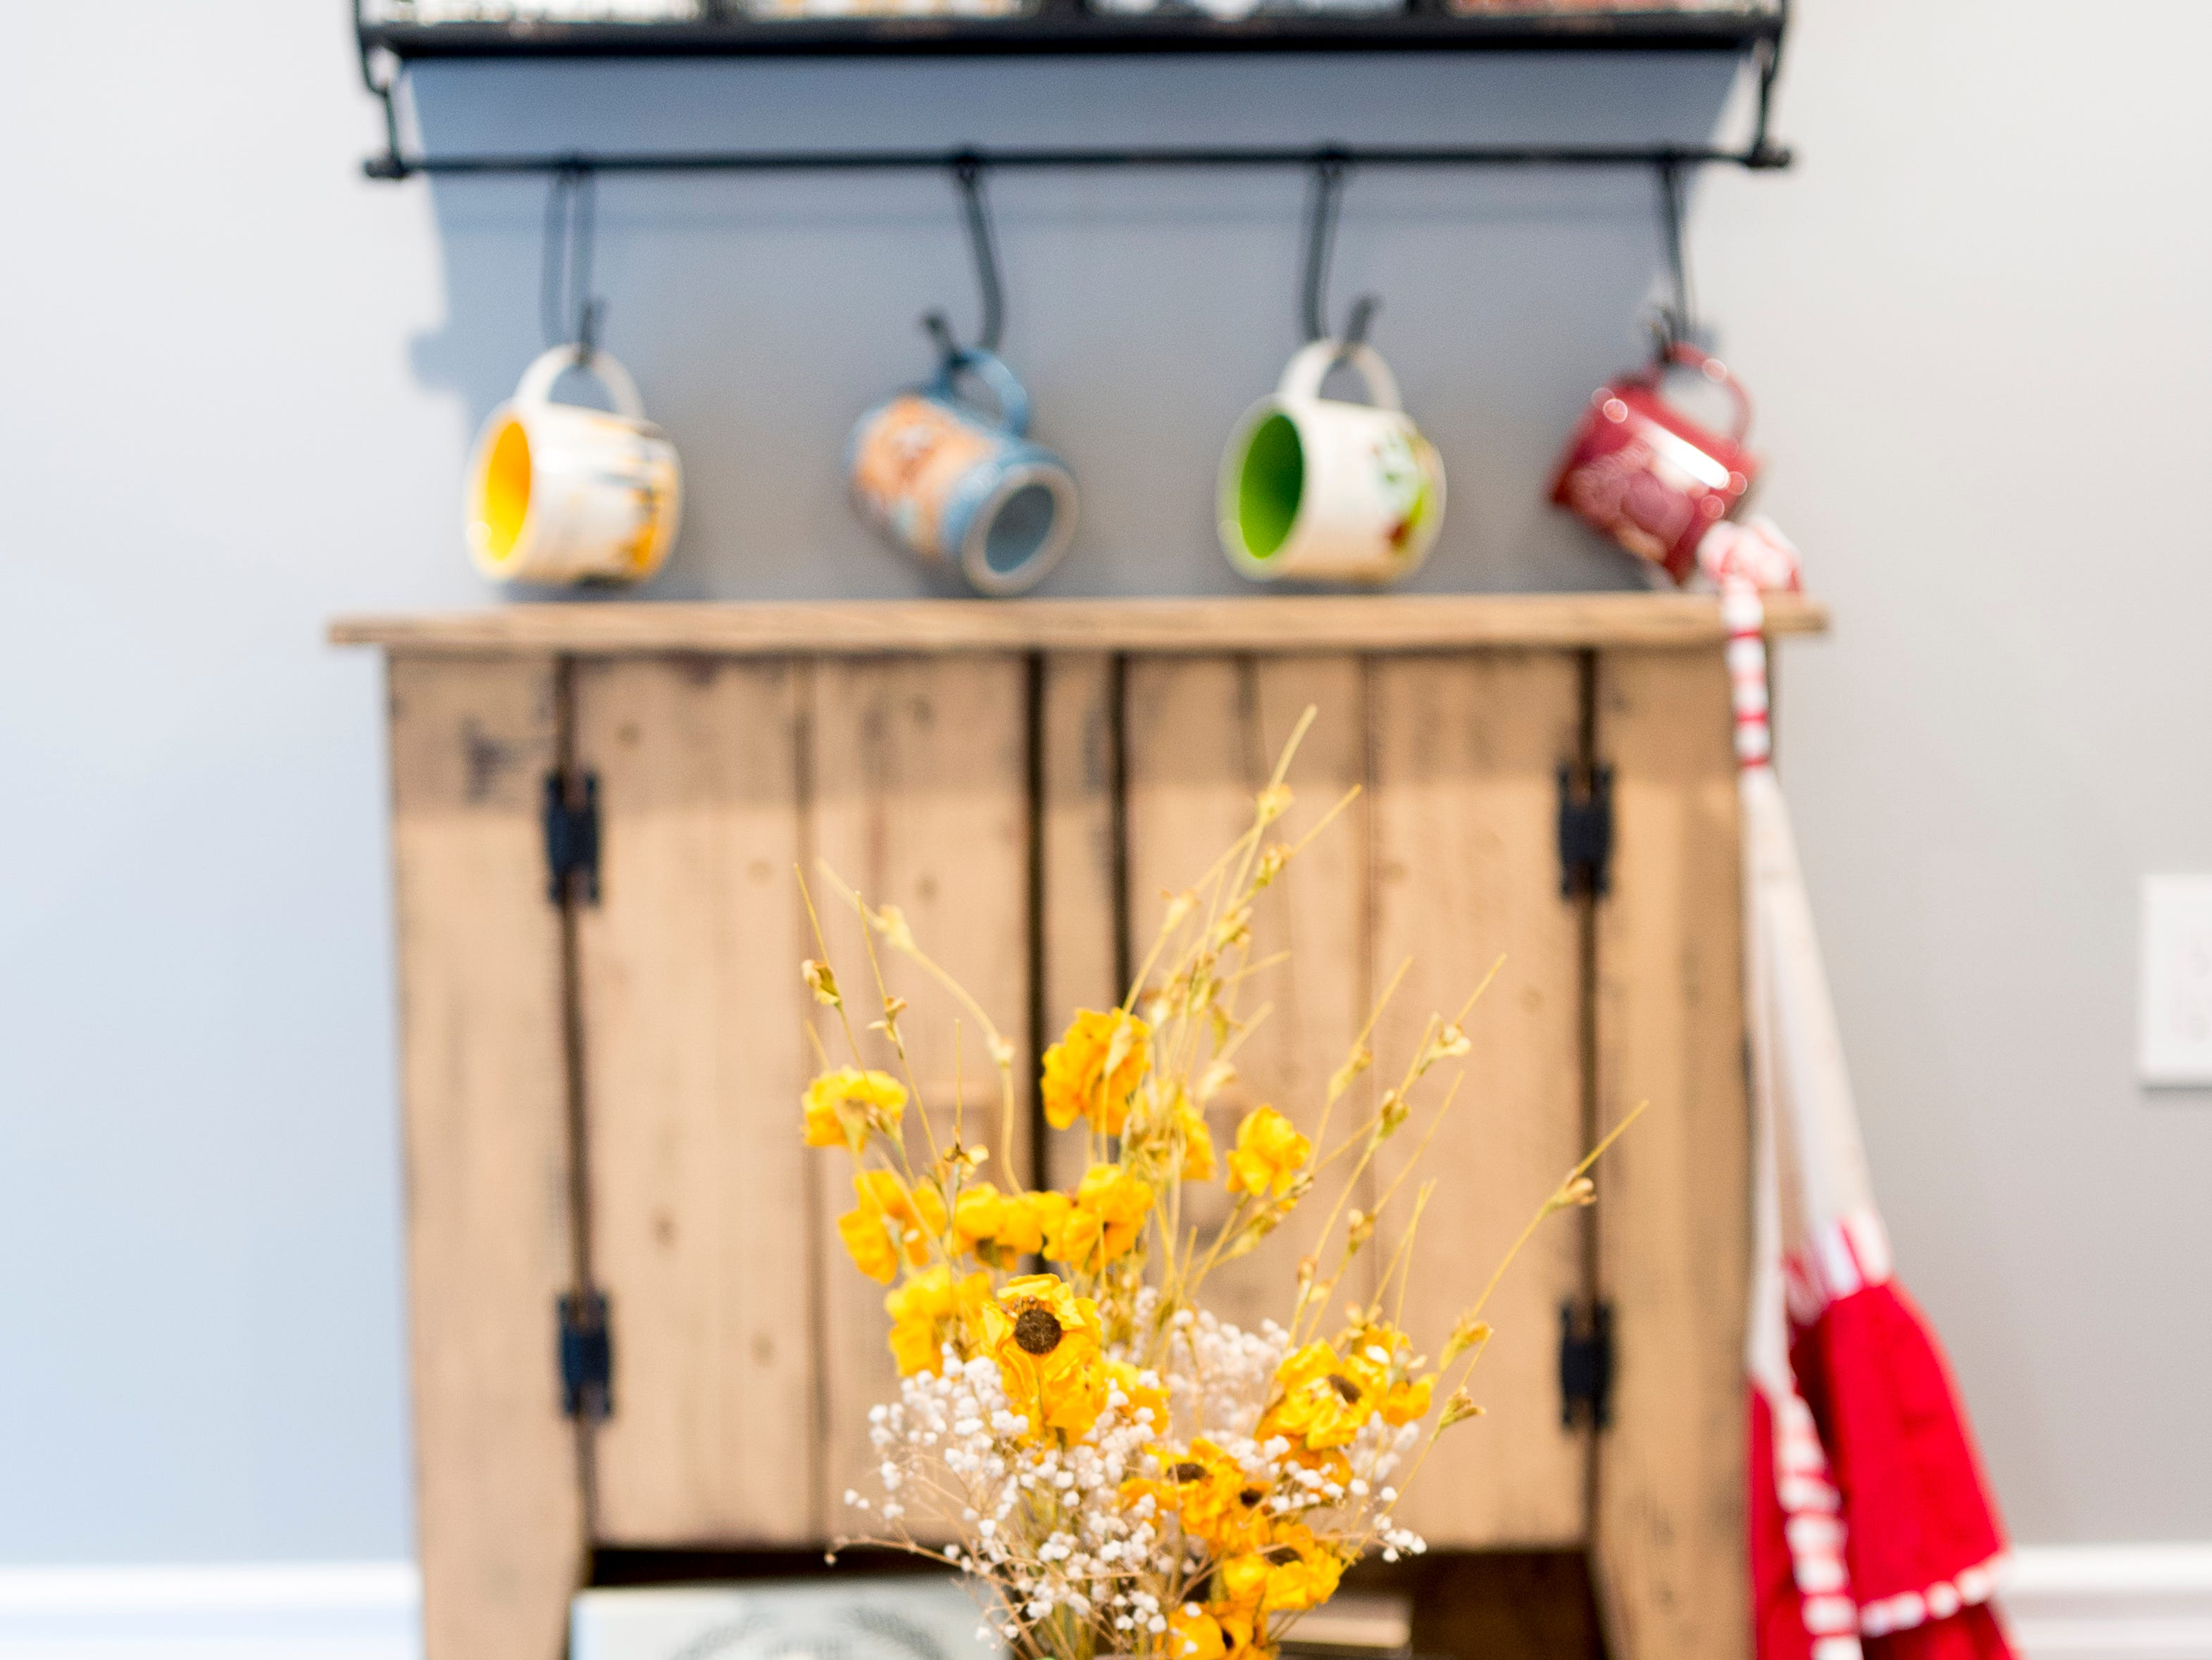 Decorations adorn the dining area in their home off McKamey Road west of Knoxville, Tennessee on Wednesday, April 3, 2019. After months of house searching, the couple decided to move into their current home last December after making some small compromises like being further away from downtown.